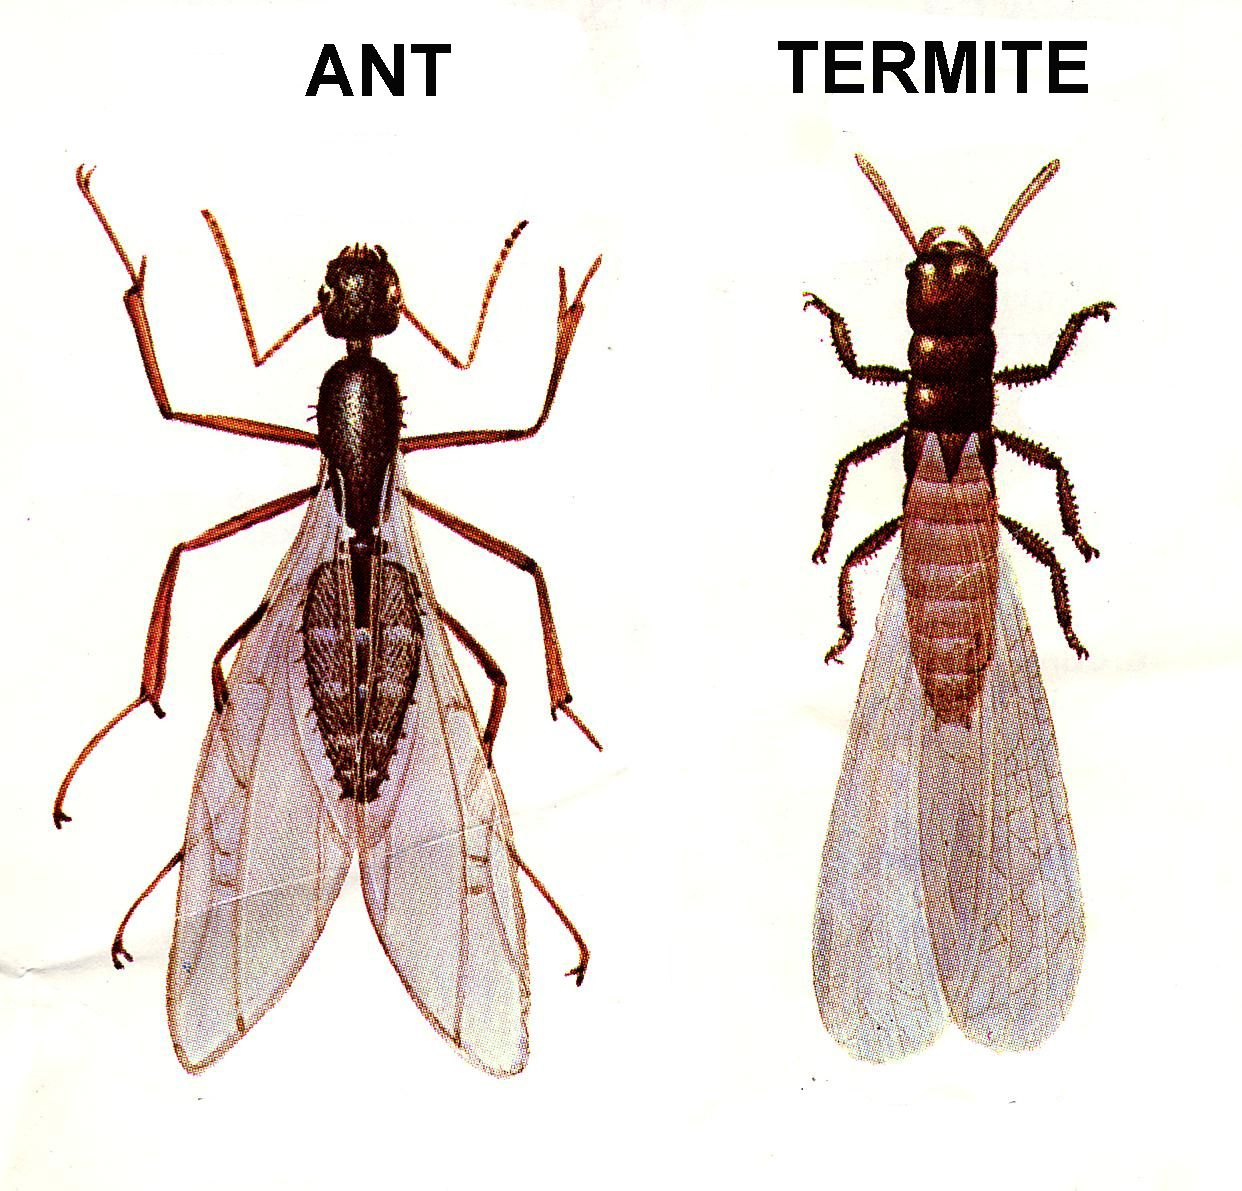 10 Tips on How to Control Flying Ants. What to Do About Flying Ants in Your Home